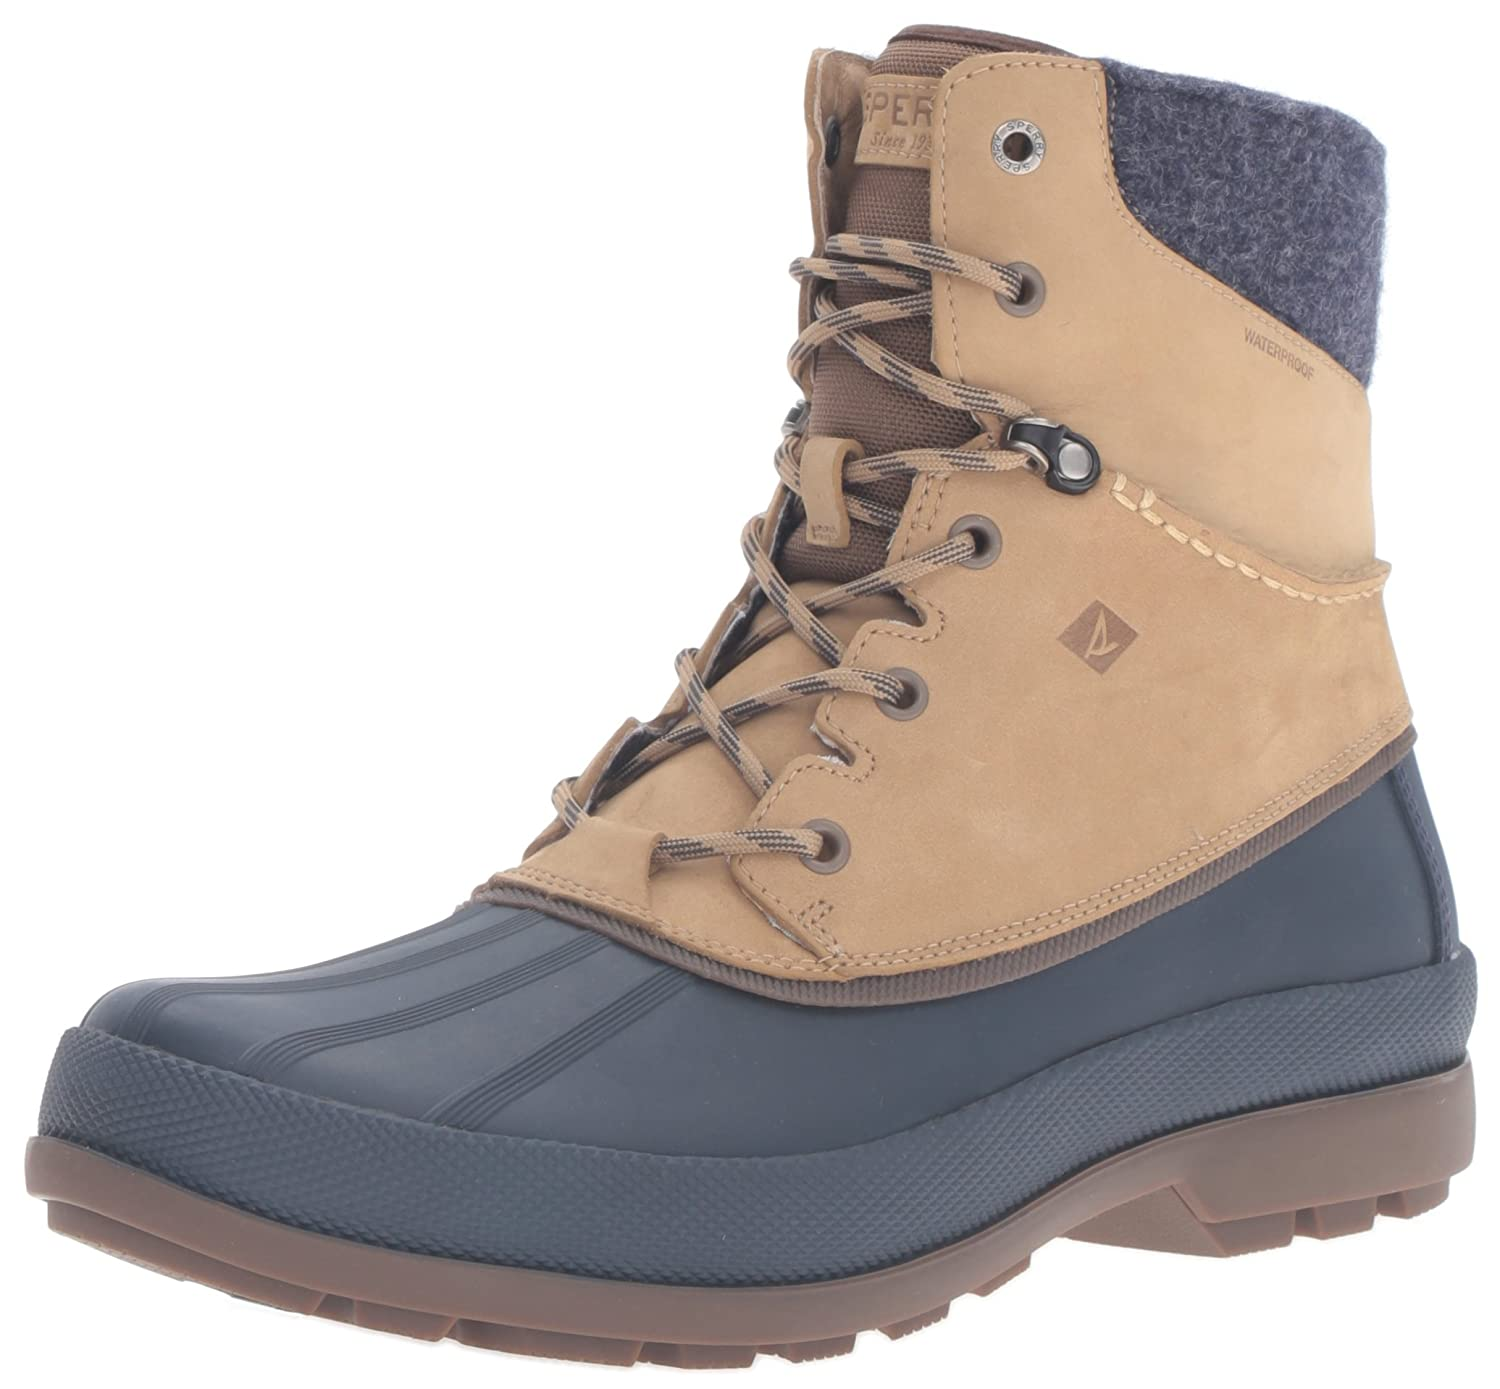 Sperry Top-Sider Men's Cold Bay Winter Stiefel